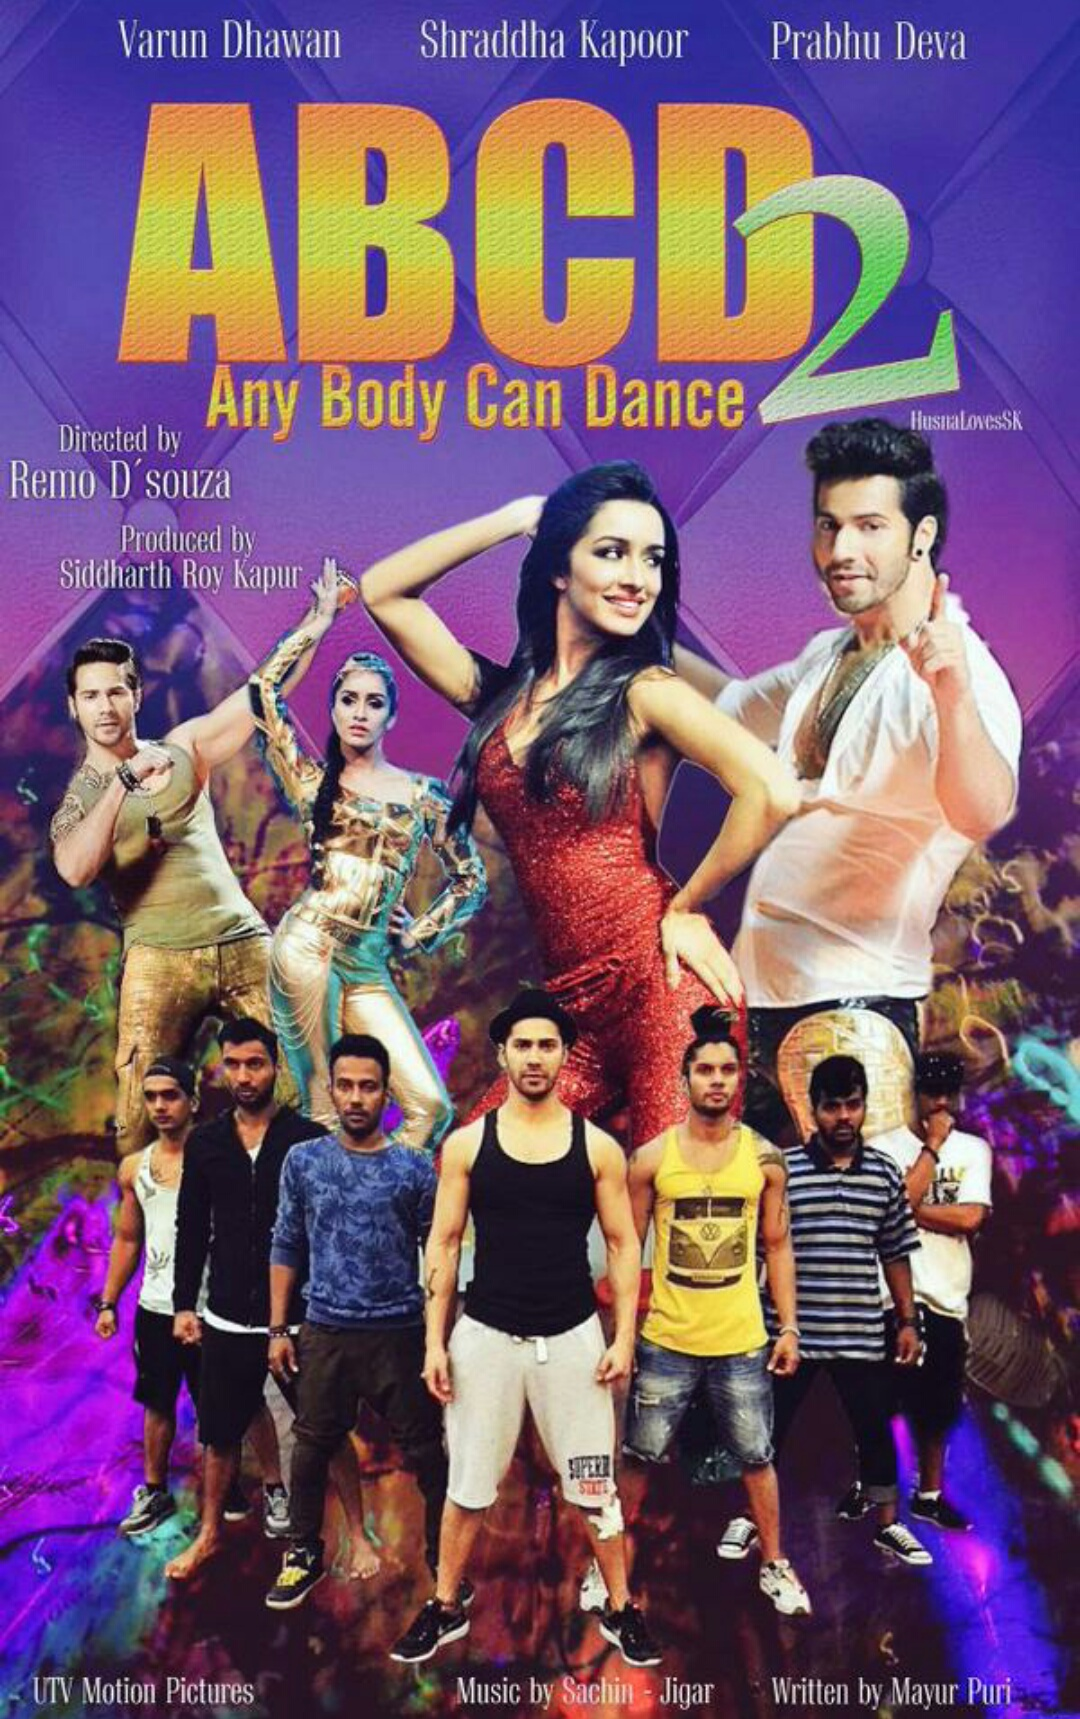 Awesome film - ABCD 2 Audience Review - MouthShut com